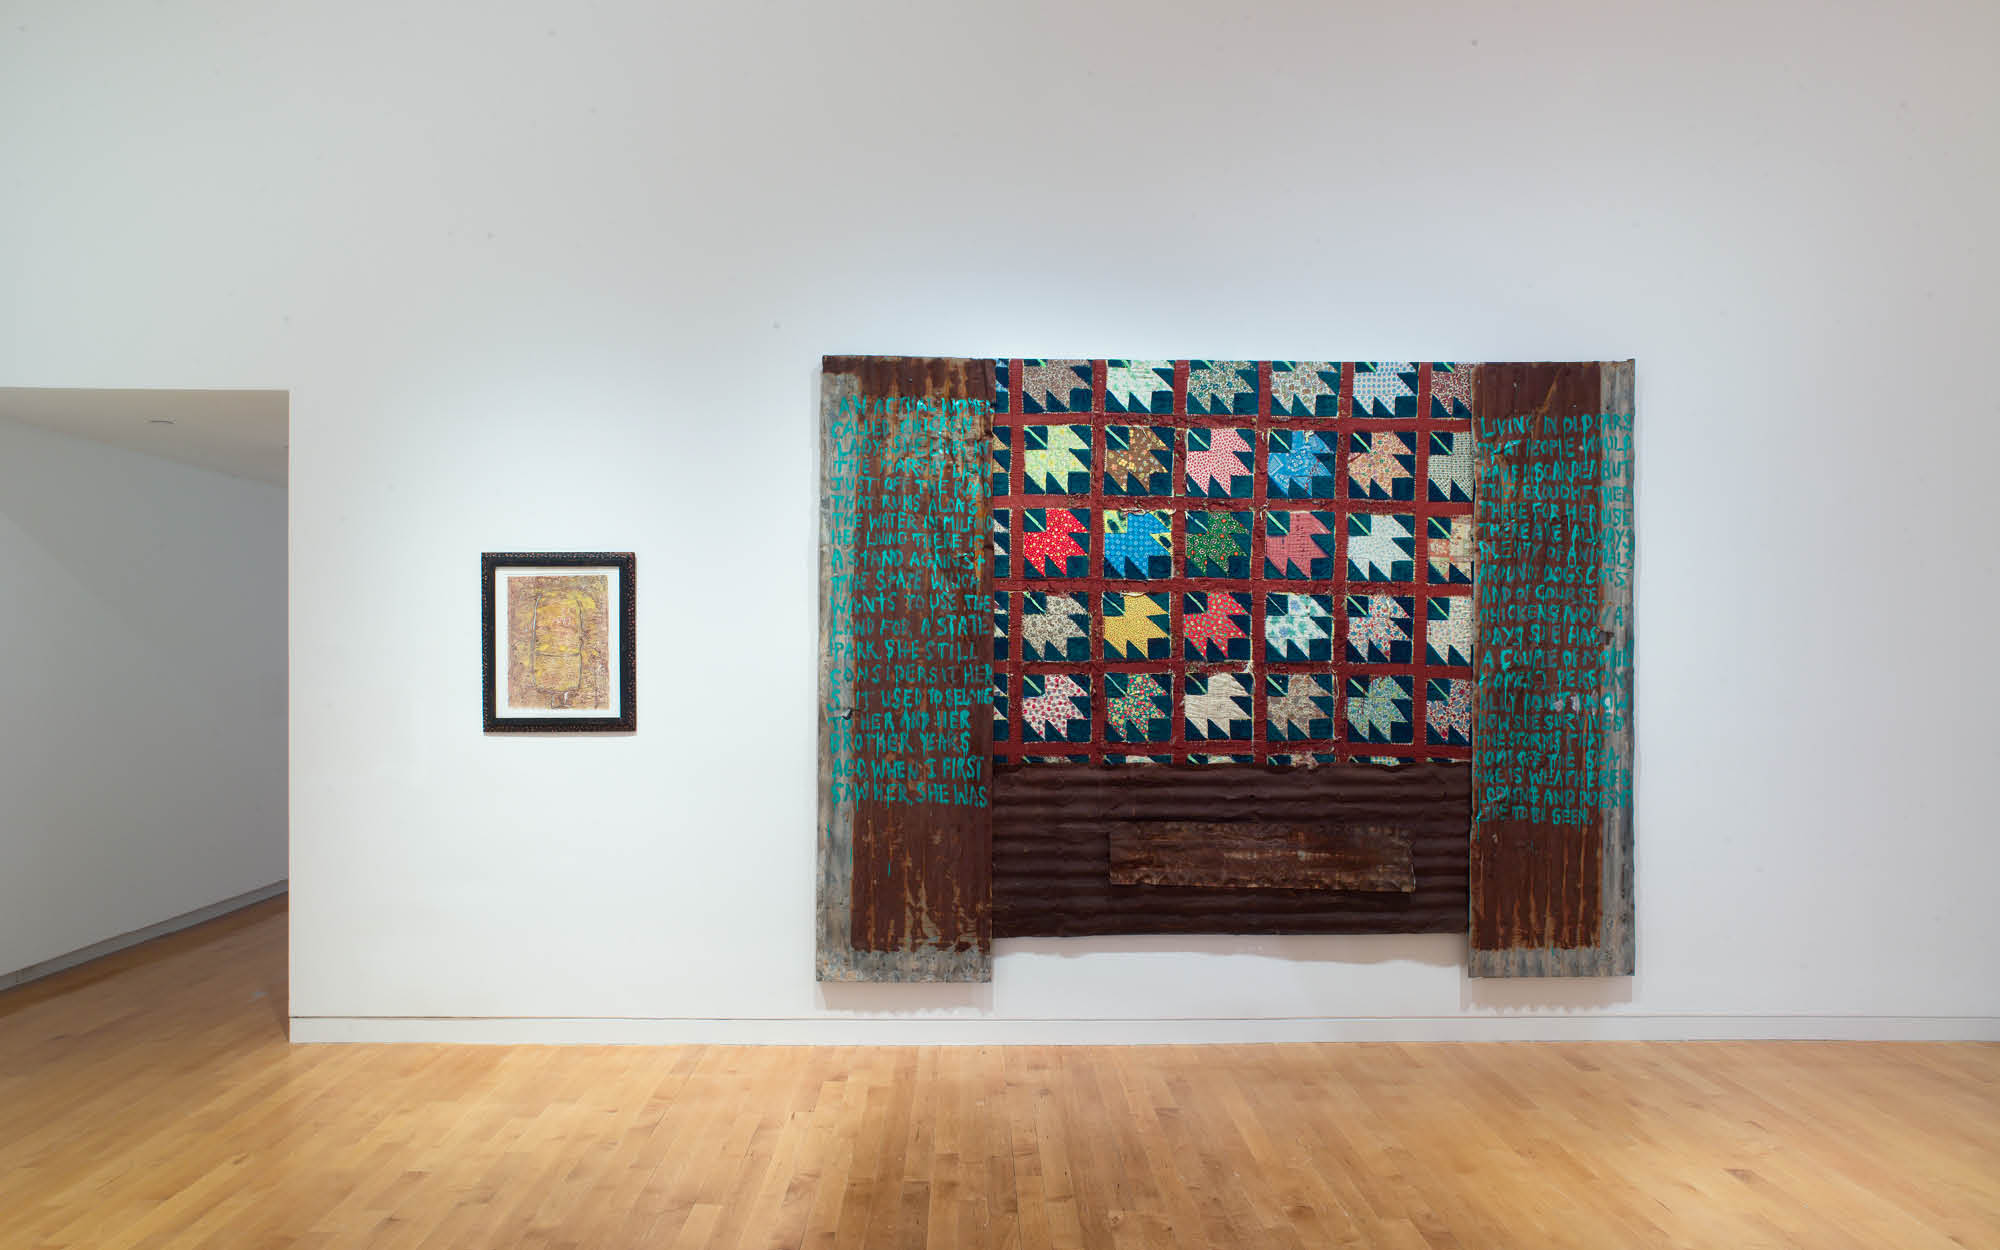 Harmony Hammond, Material Witness: Five Decades of Art, The Aldrich Contemporary Art Museum, March 3 to September 15, 2019 (installation view, left Chicken Lady: The Intention to Know, 1983; right, Chicken Lady, 1989) Courtesy of the artist and Alexander Gray Associates, New York Photo: Jason Mandella © Harmony Hammond / VAGA at Artists Rights Society (ARS), NY